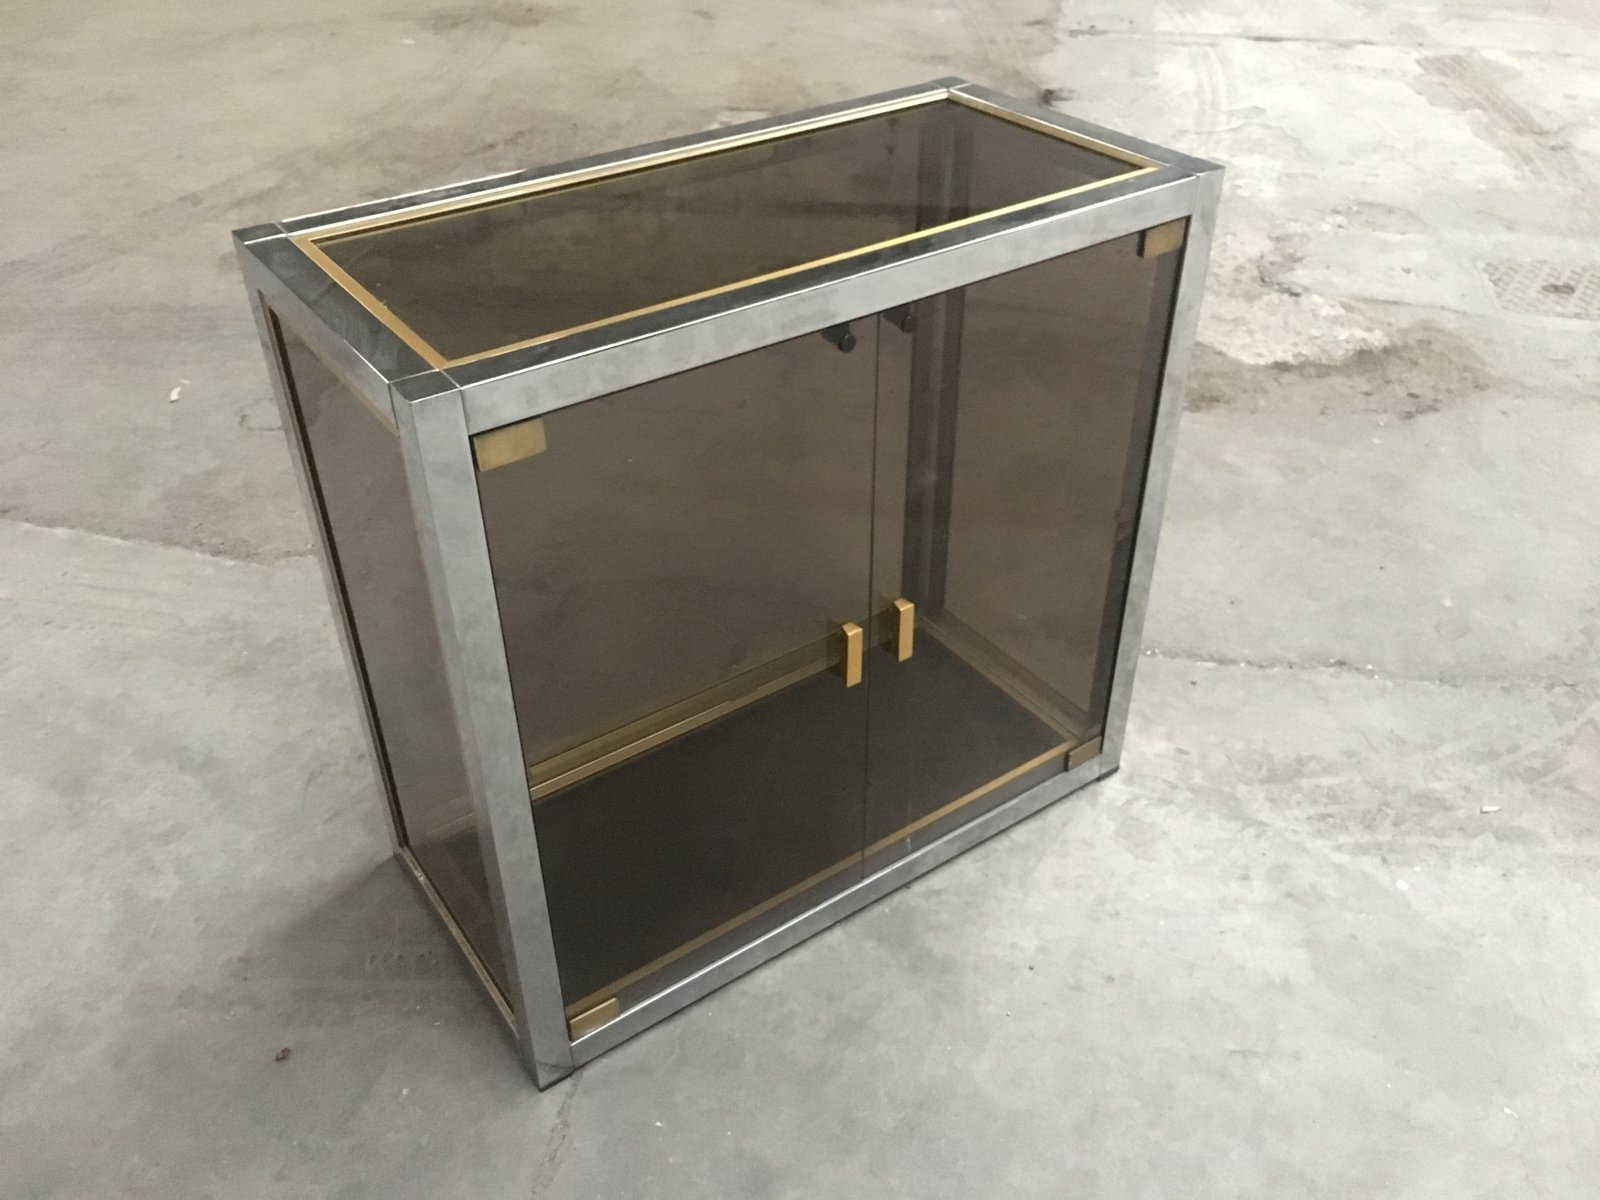 mid century modern vitrine in chrome brass and smoked glass by romeo rega 1970s for sale at. Black Bedroom Furniture Sets. Home Design Ideas